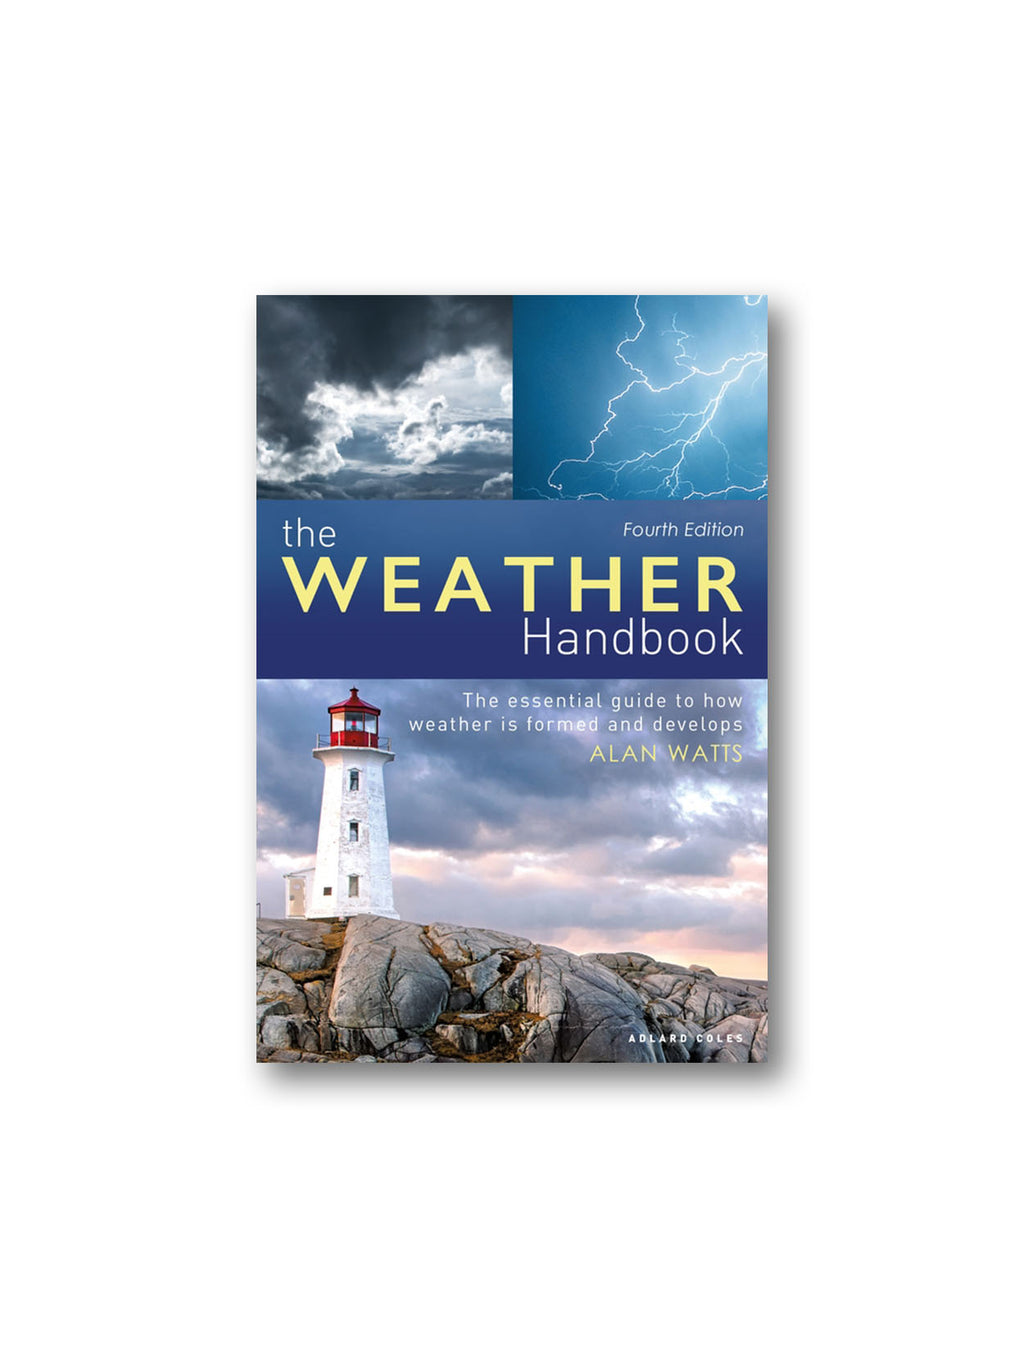 The Weather Handbook : The Essential Guide to How Weather is Formed and Develops